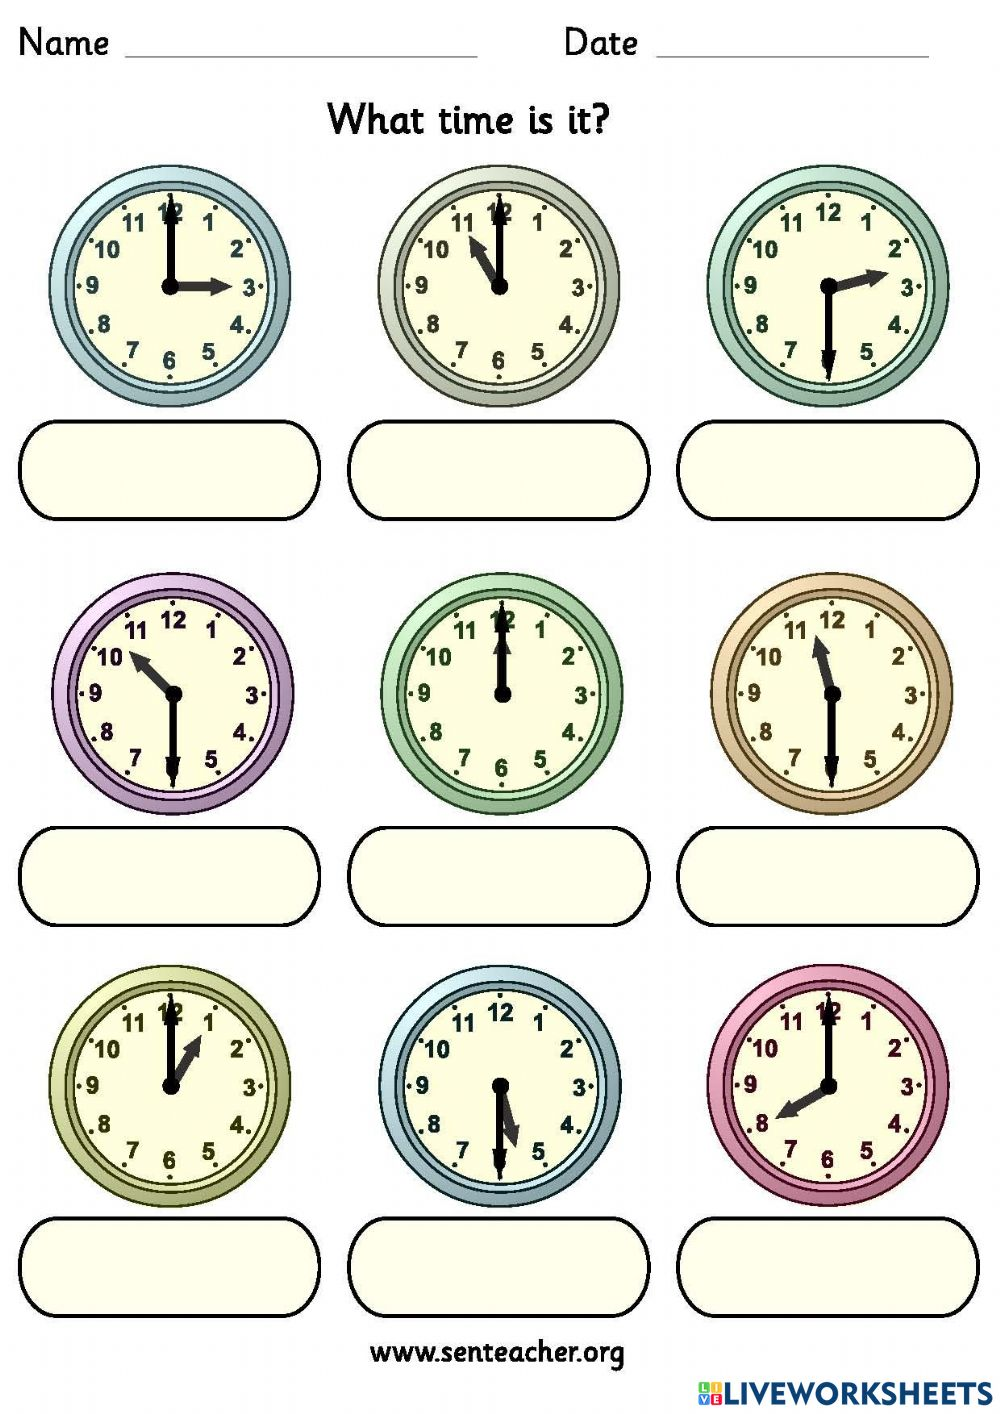 medium resolution of What time is it? online exercise for Grade 2